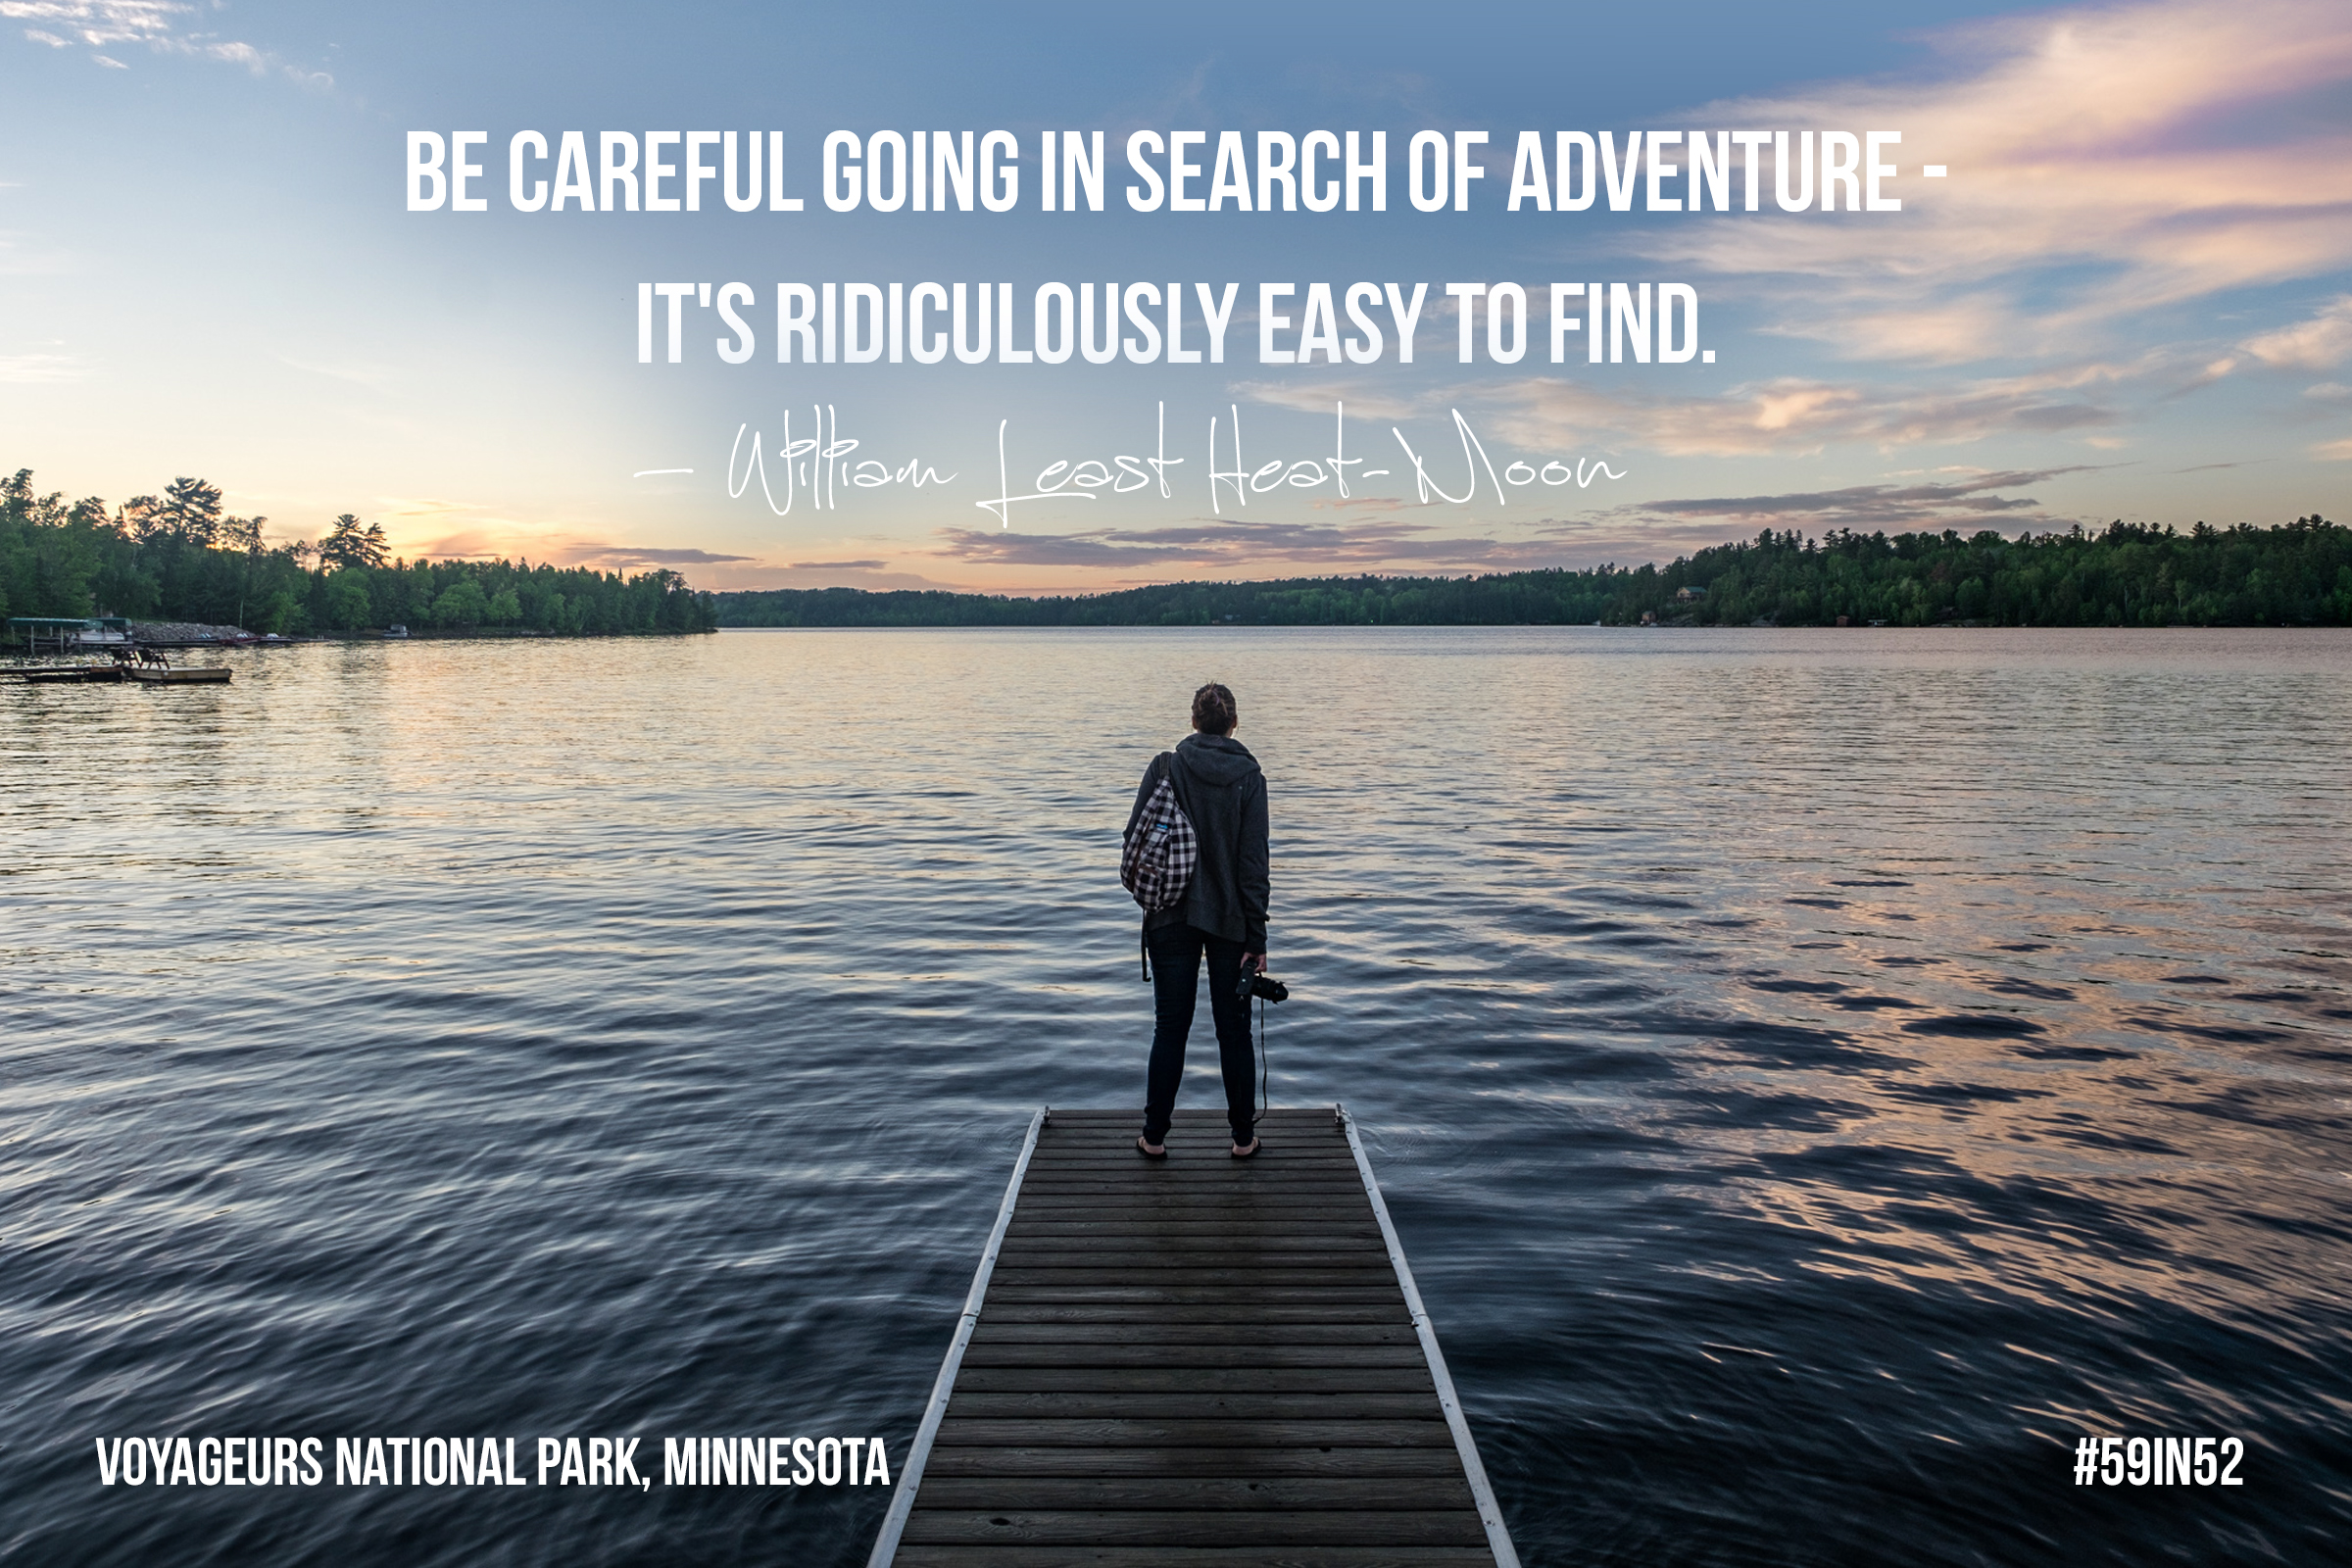 'Be careful going in search of adventures - it's ridiculously easy to find.' -William Least Heat-Moon